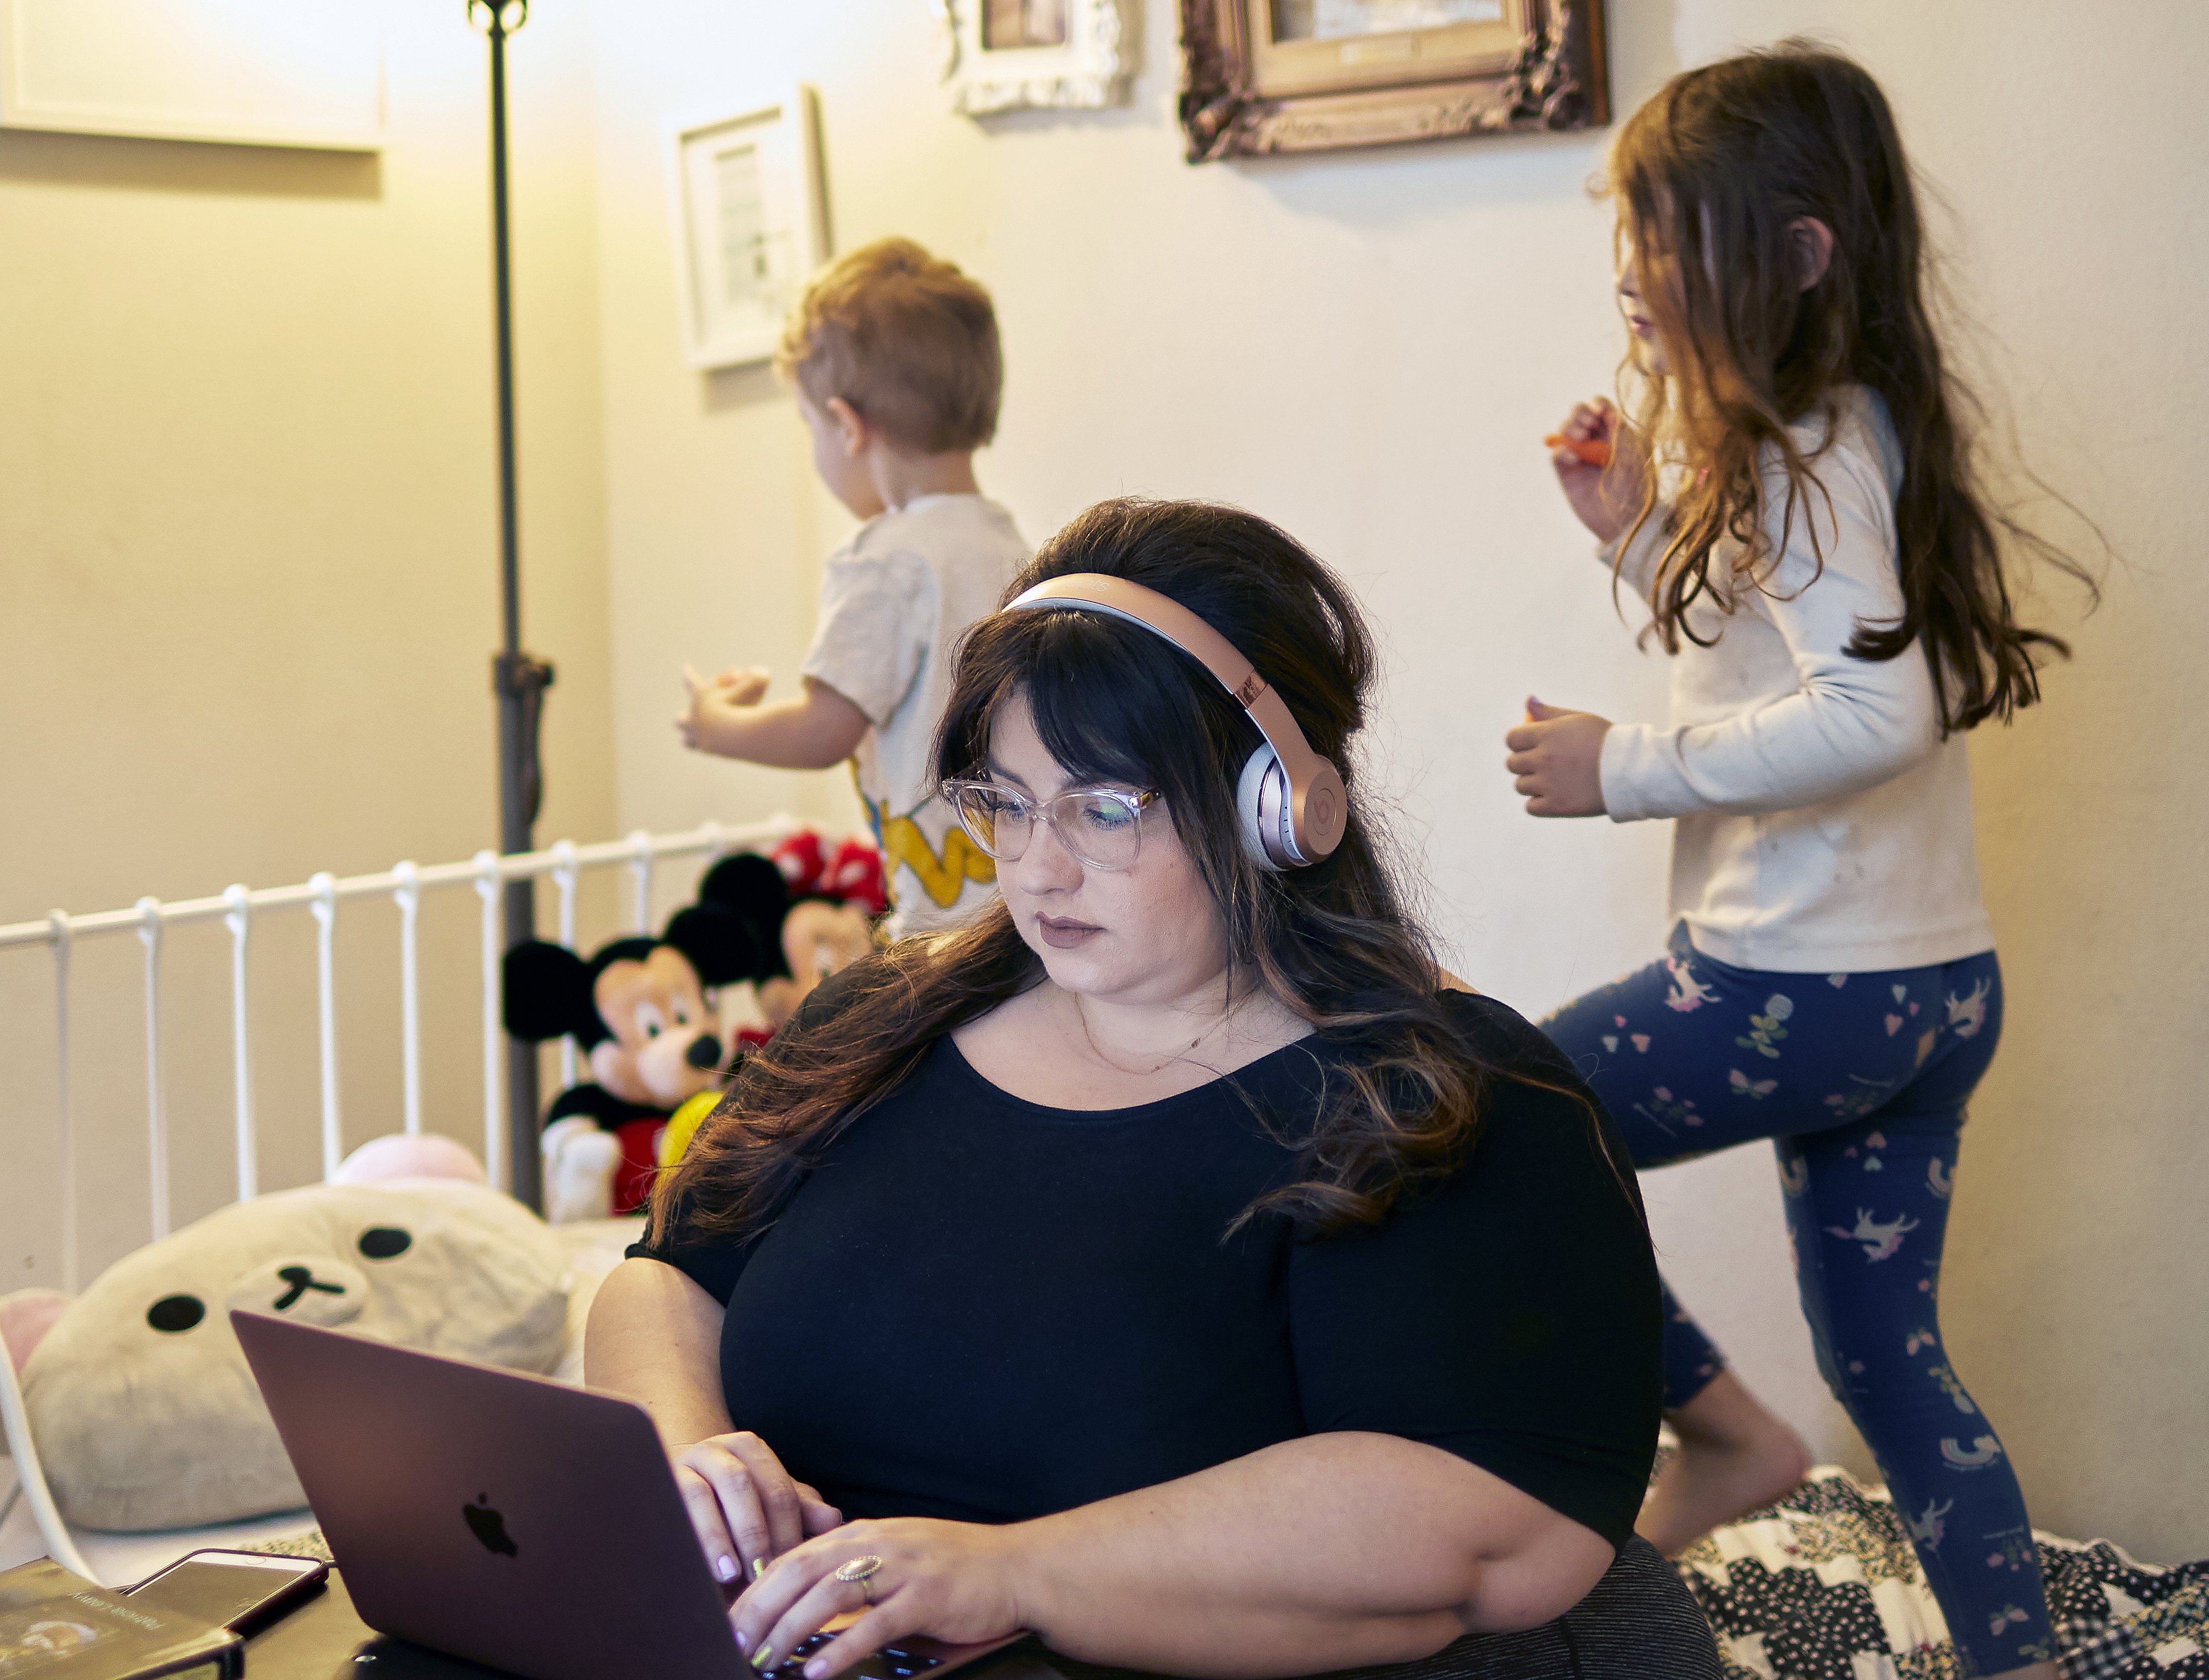 LeighAnna Hidalgo working at home with her children